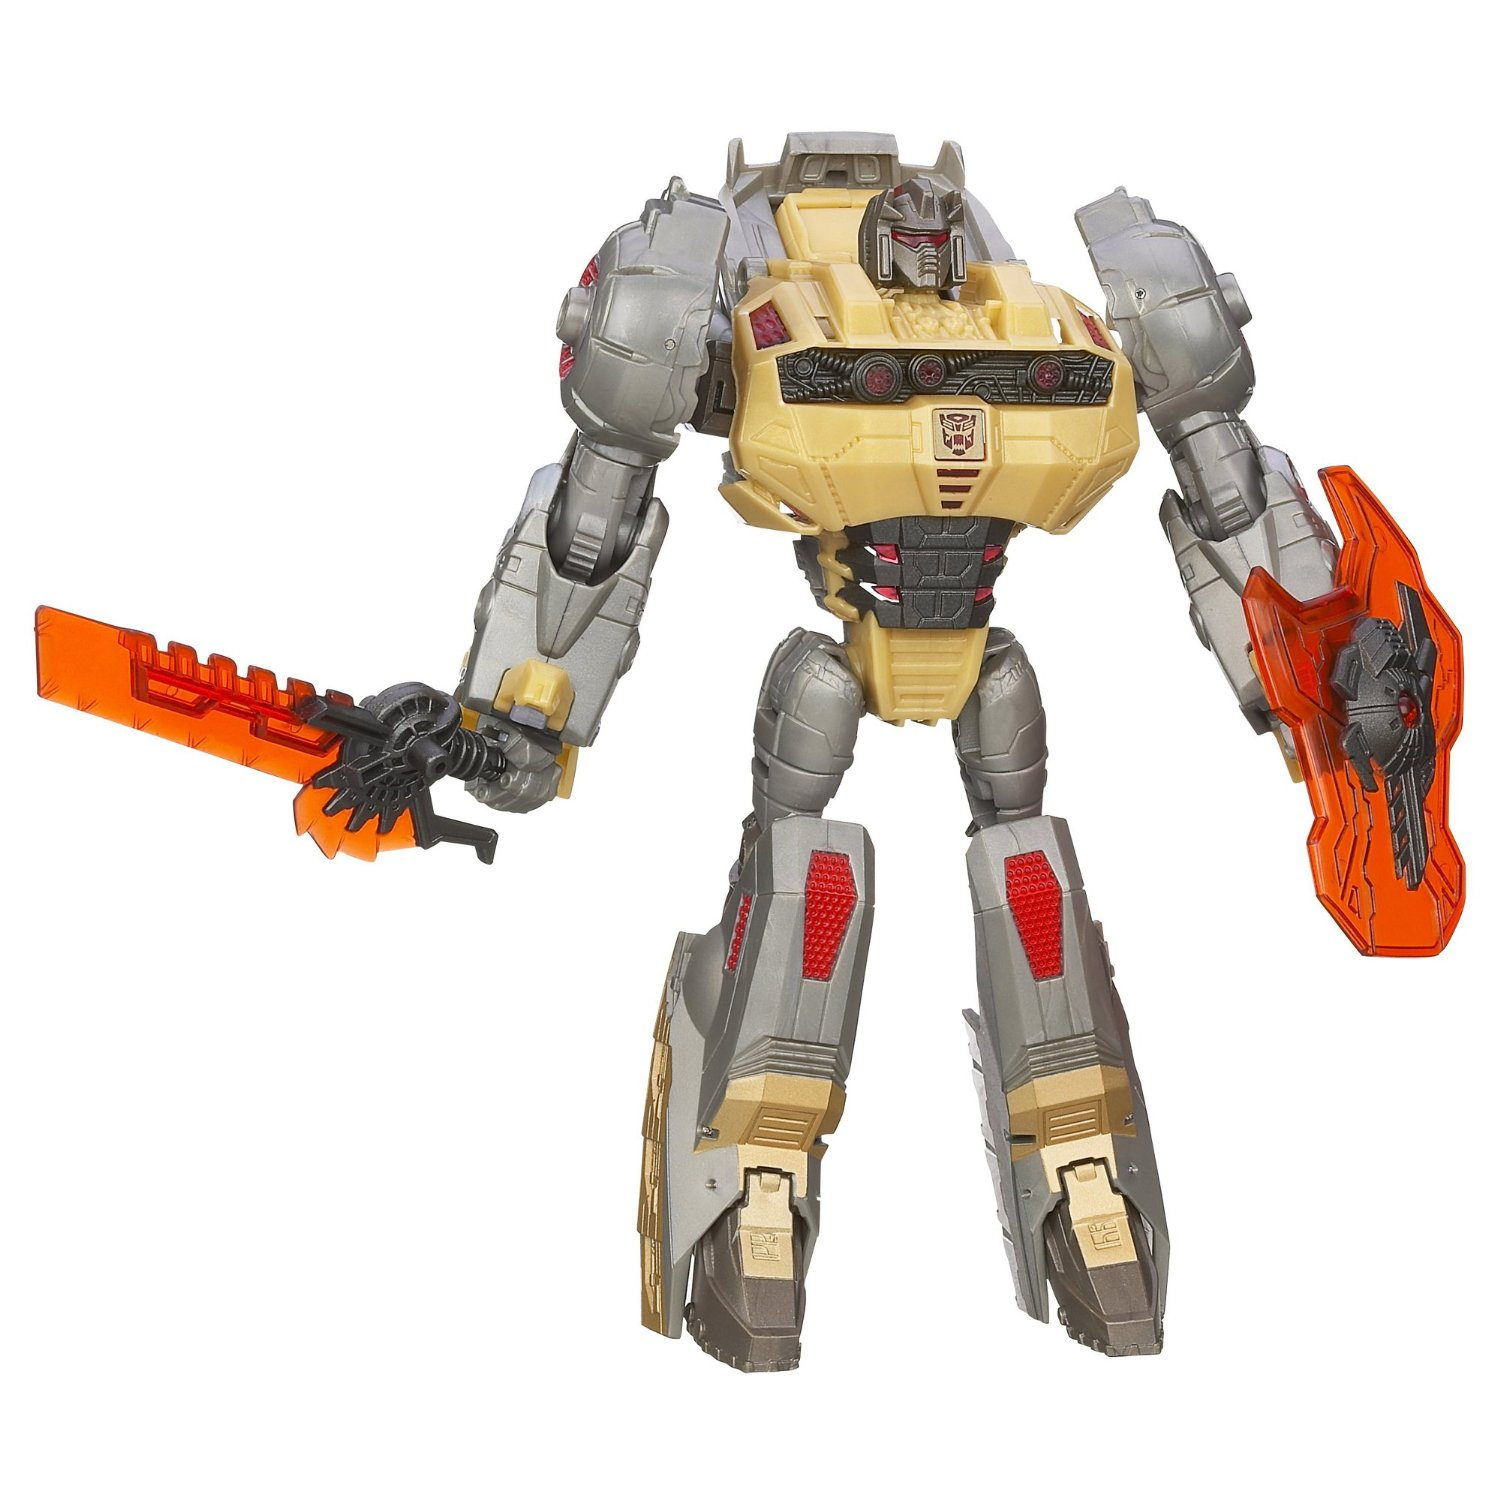 Large Transformers Toys 27